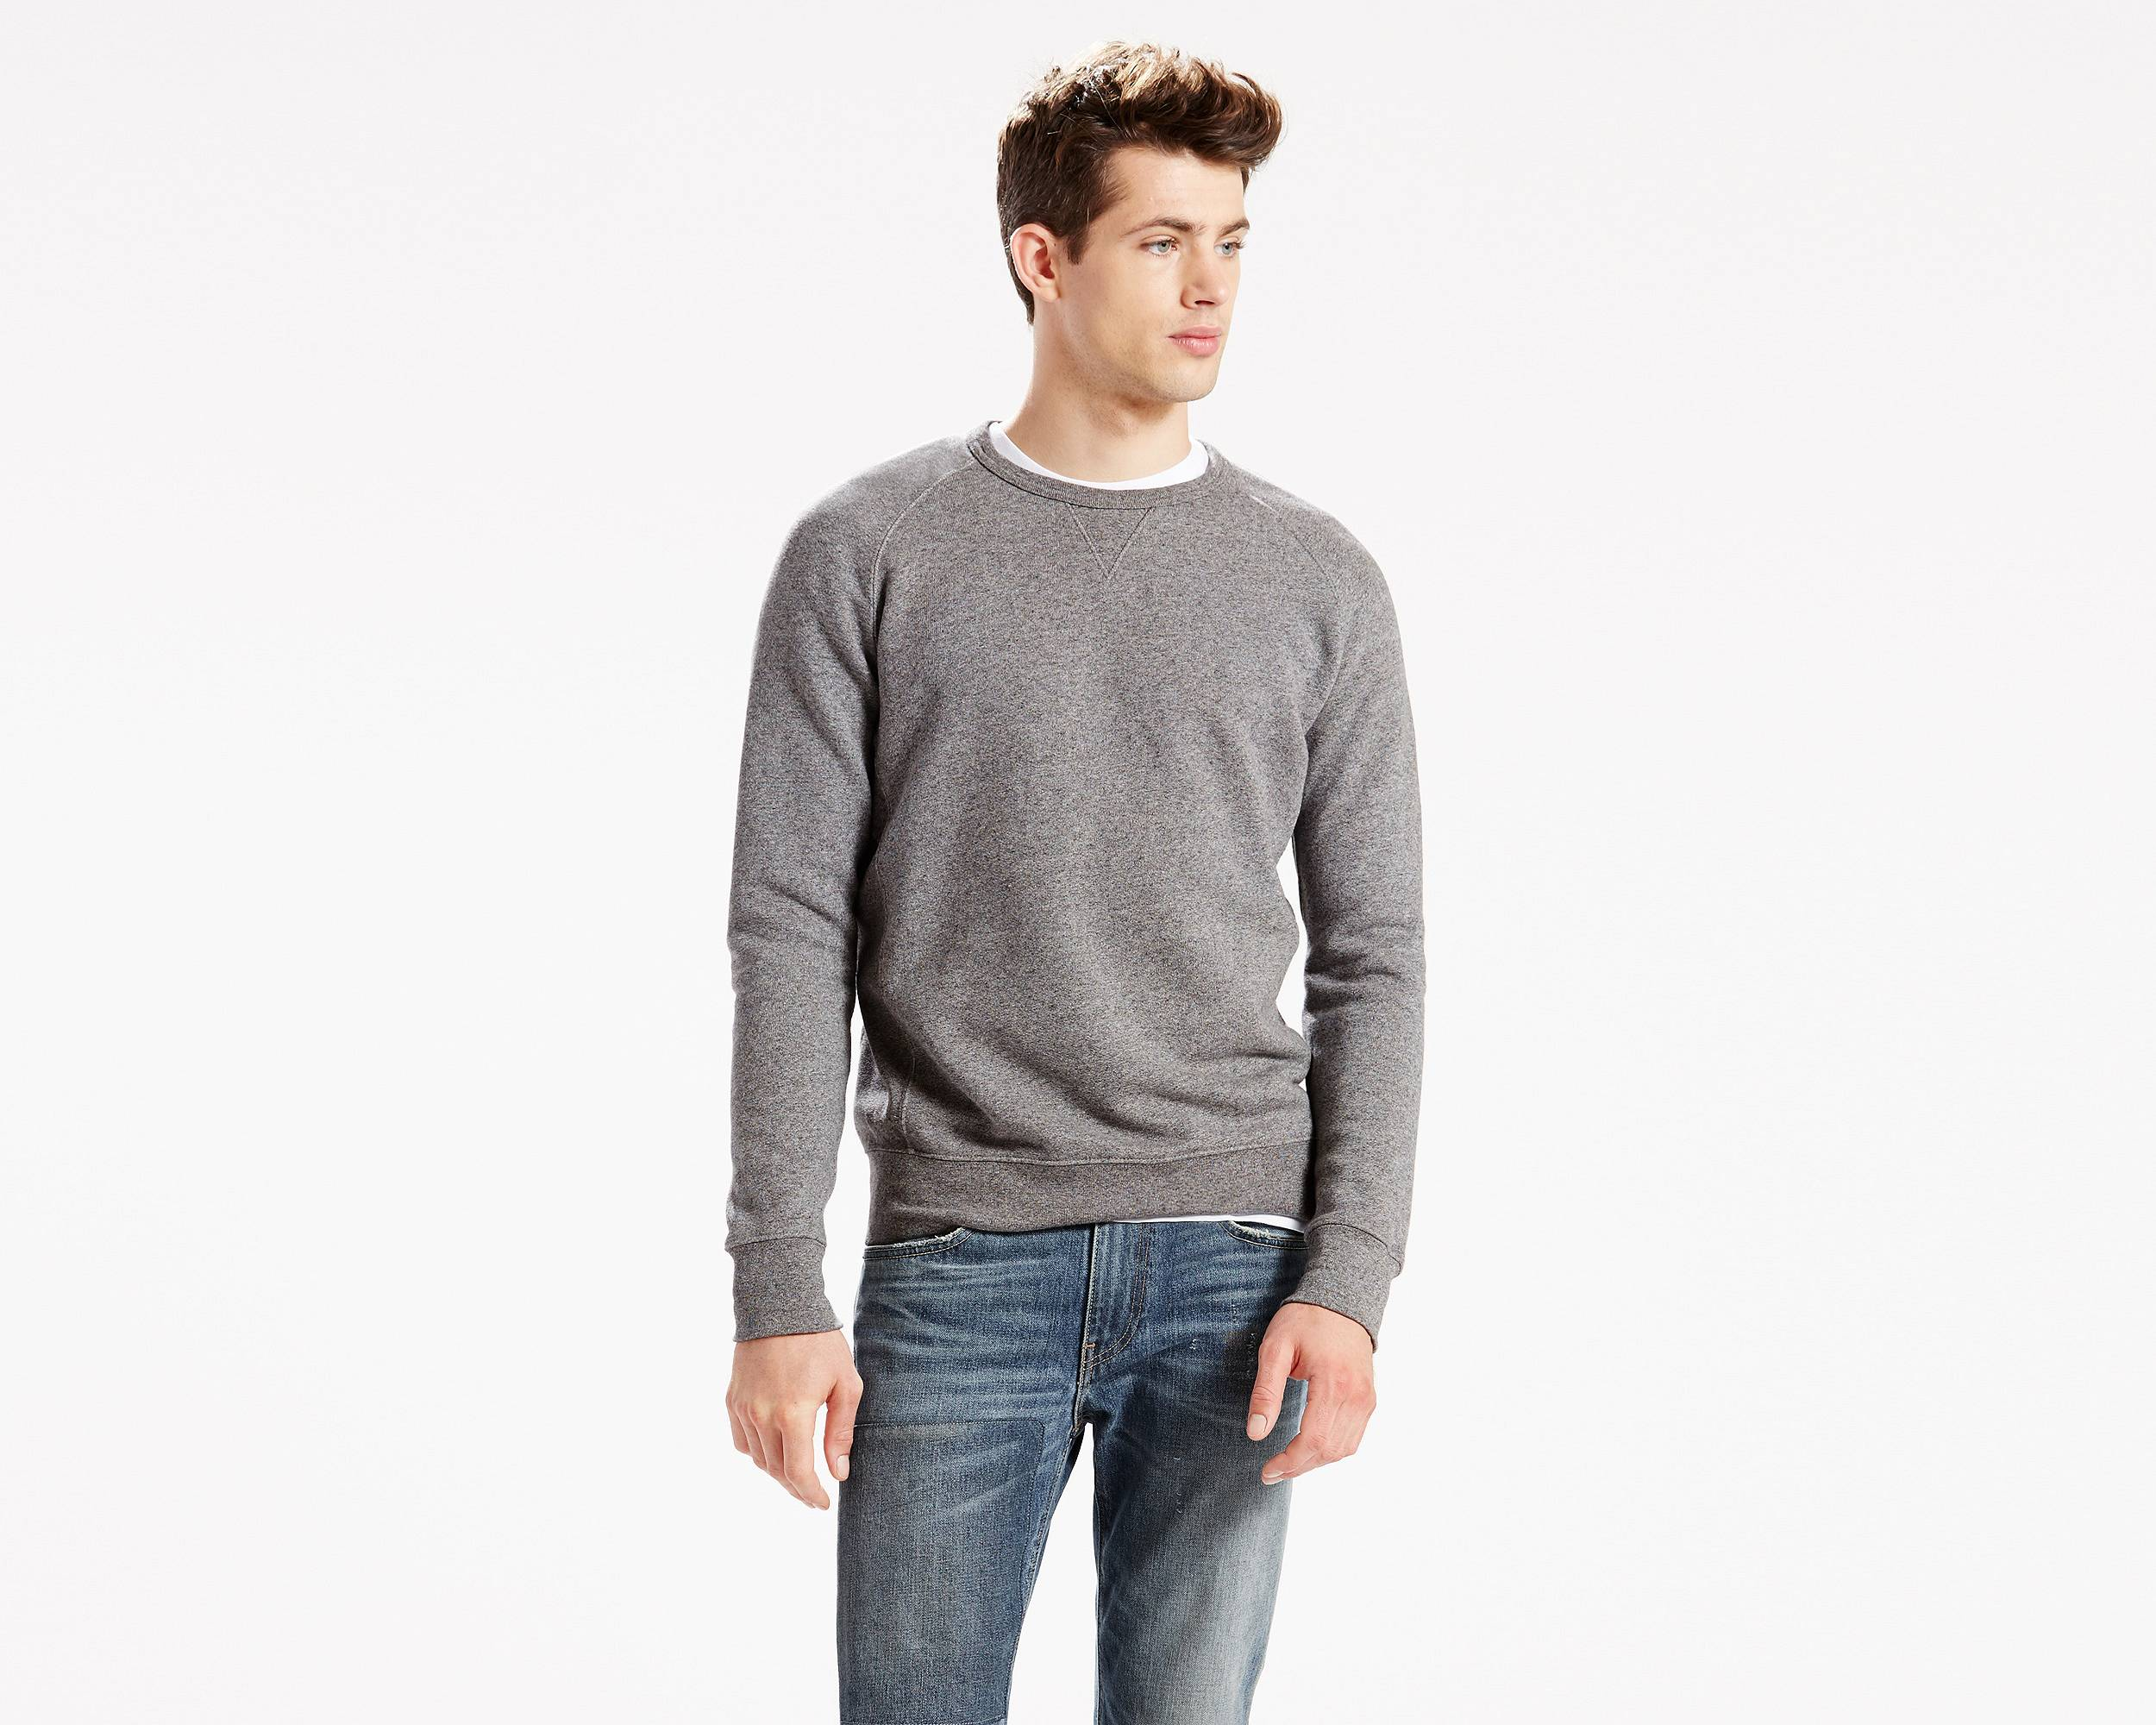 Sweater With Dress Shirt